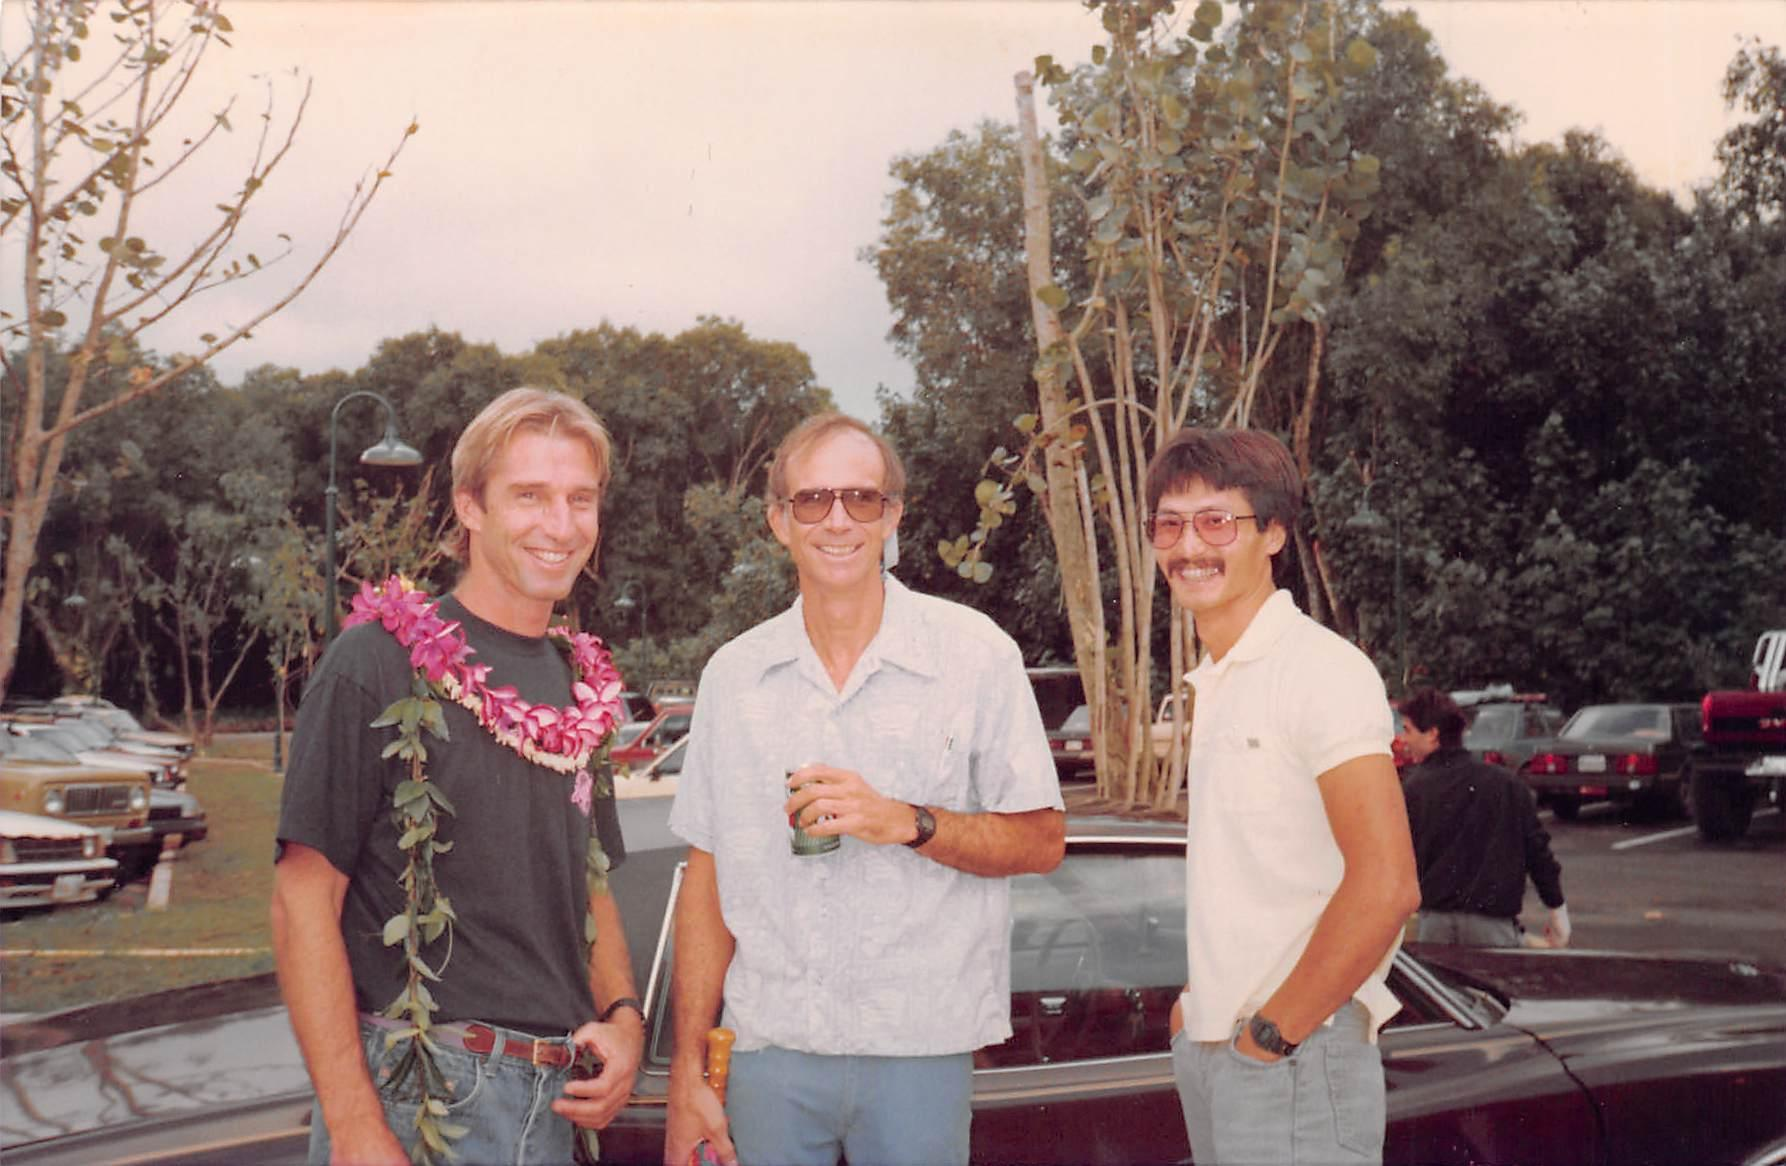 Hanalei Surf Company's grand opening — Charlie Cowden, Gaylord Wilcox, Keith Ching — November 18, 1989